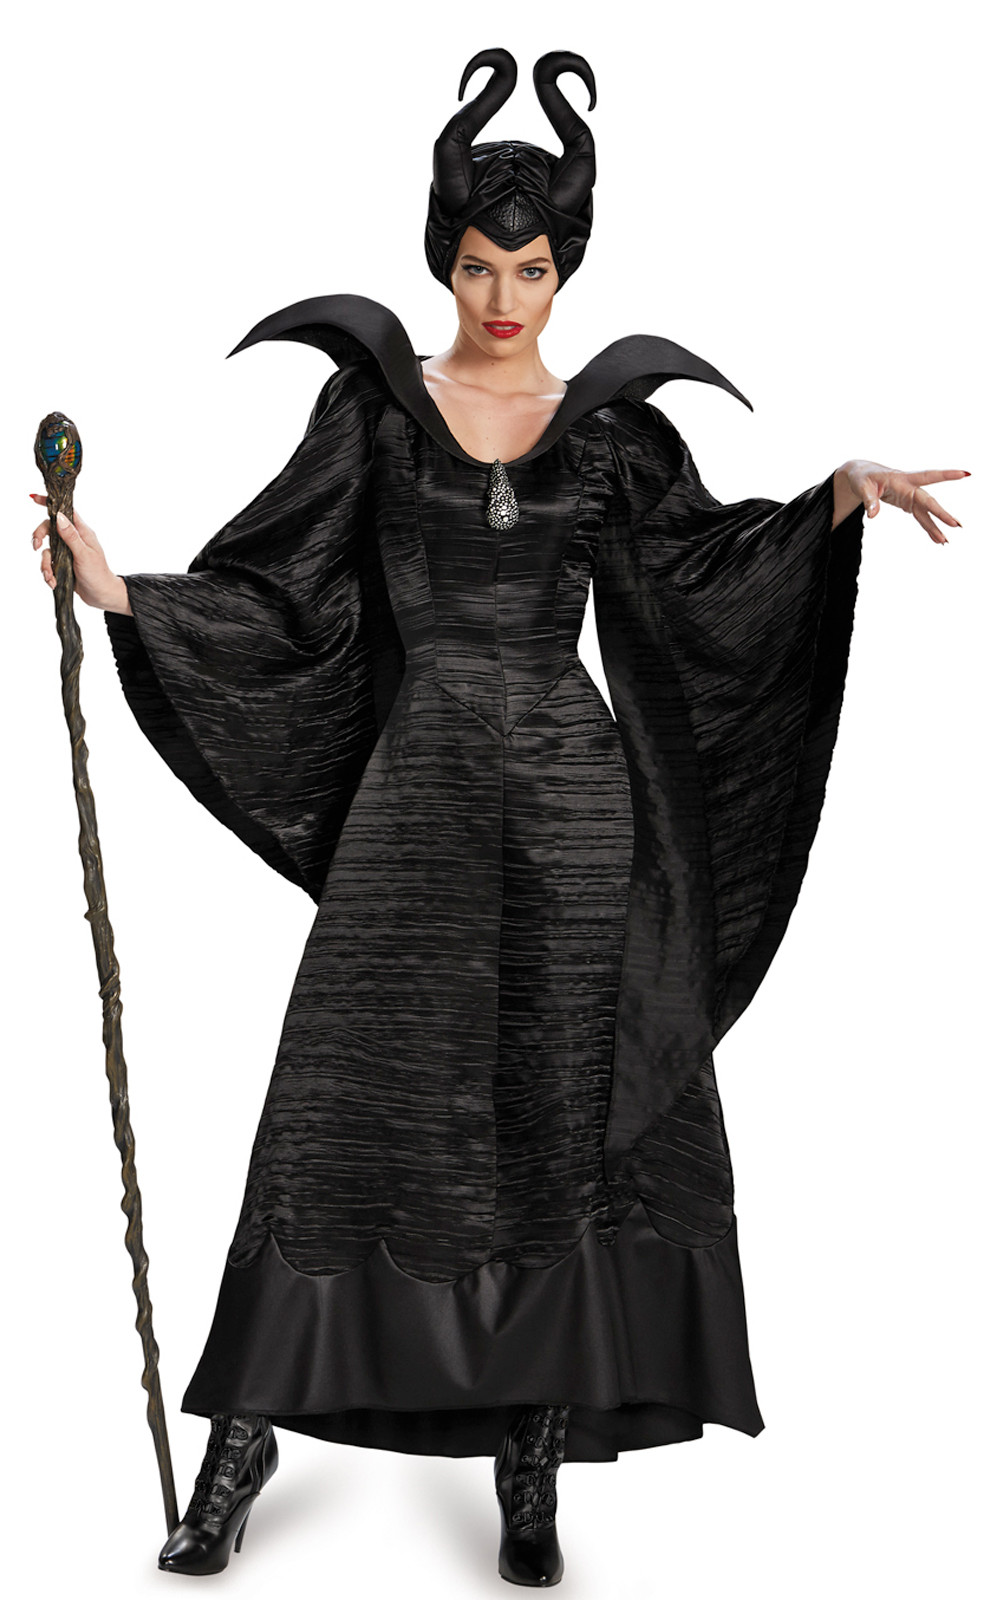 NEW Maleficent Deluxe Christening Black Gown Adult Halloween Costume Fancy  Dress